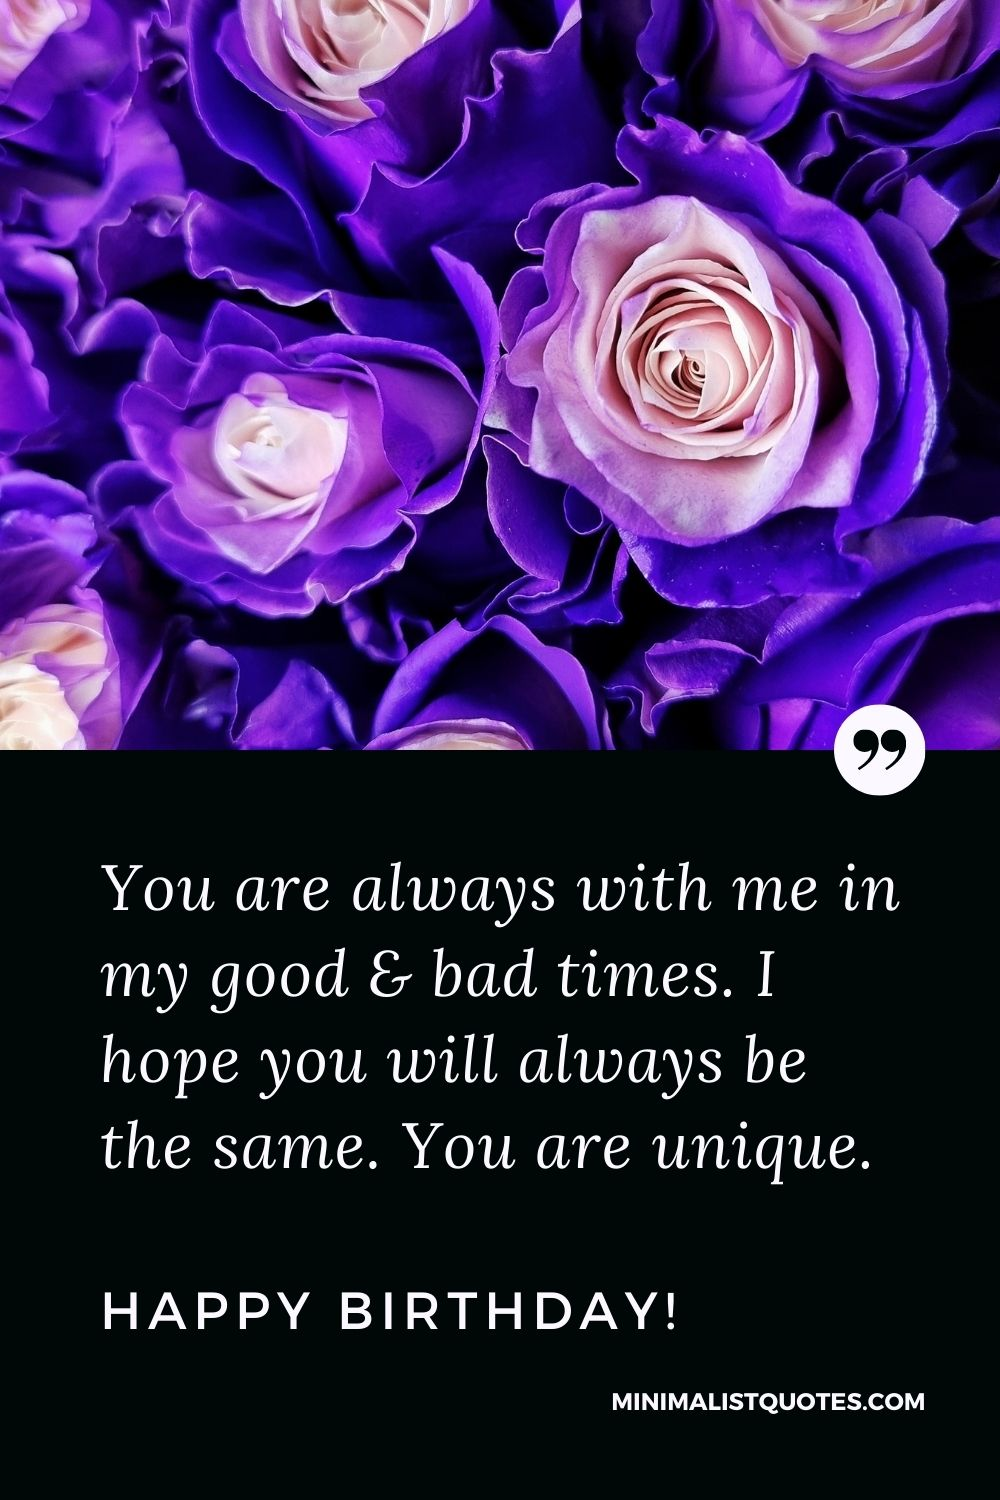 Birthday Quote, Wish & Message With Image: You are always with me in my good & bad times. I hope you will always be the same. You are unique. Happy Birthday!